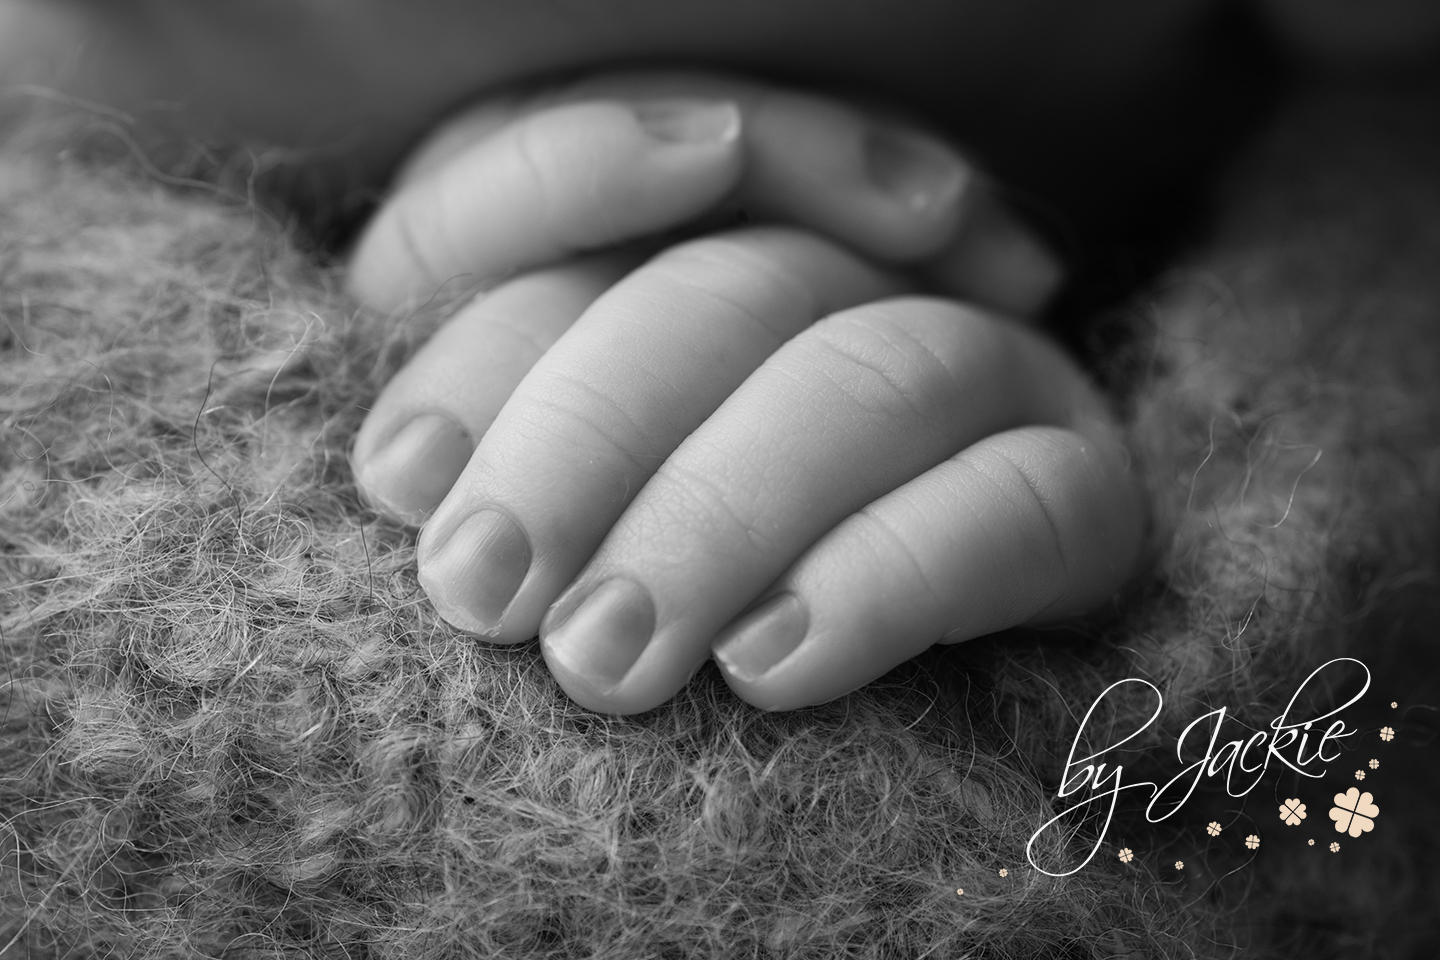 Ten tiny fingers by Babies By Jackie Photography in North Yorkshire, UK